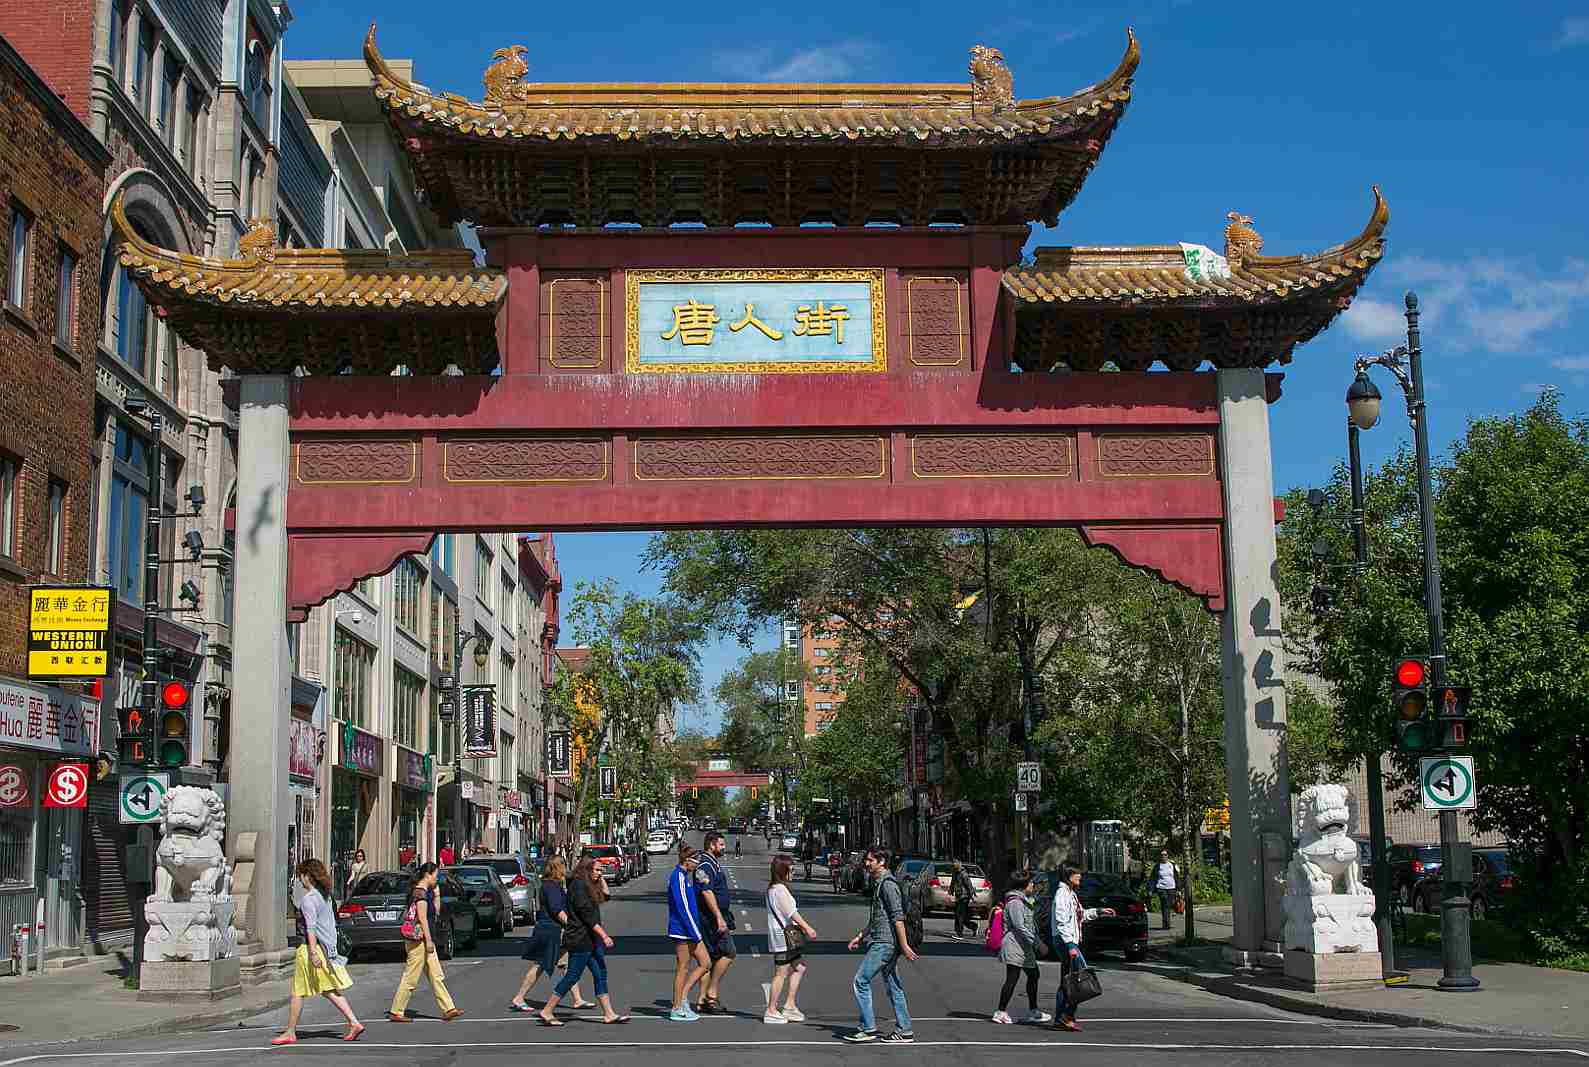 Montreal Chinatown city limits are delineated by four friendship arches.